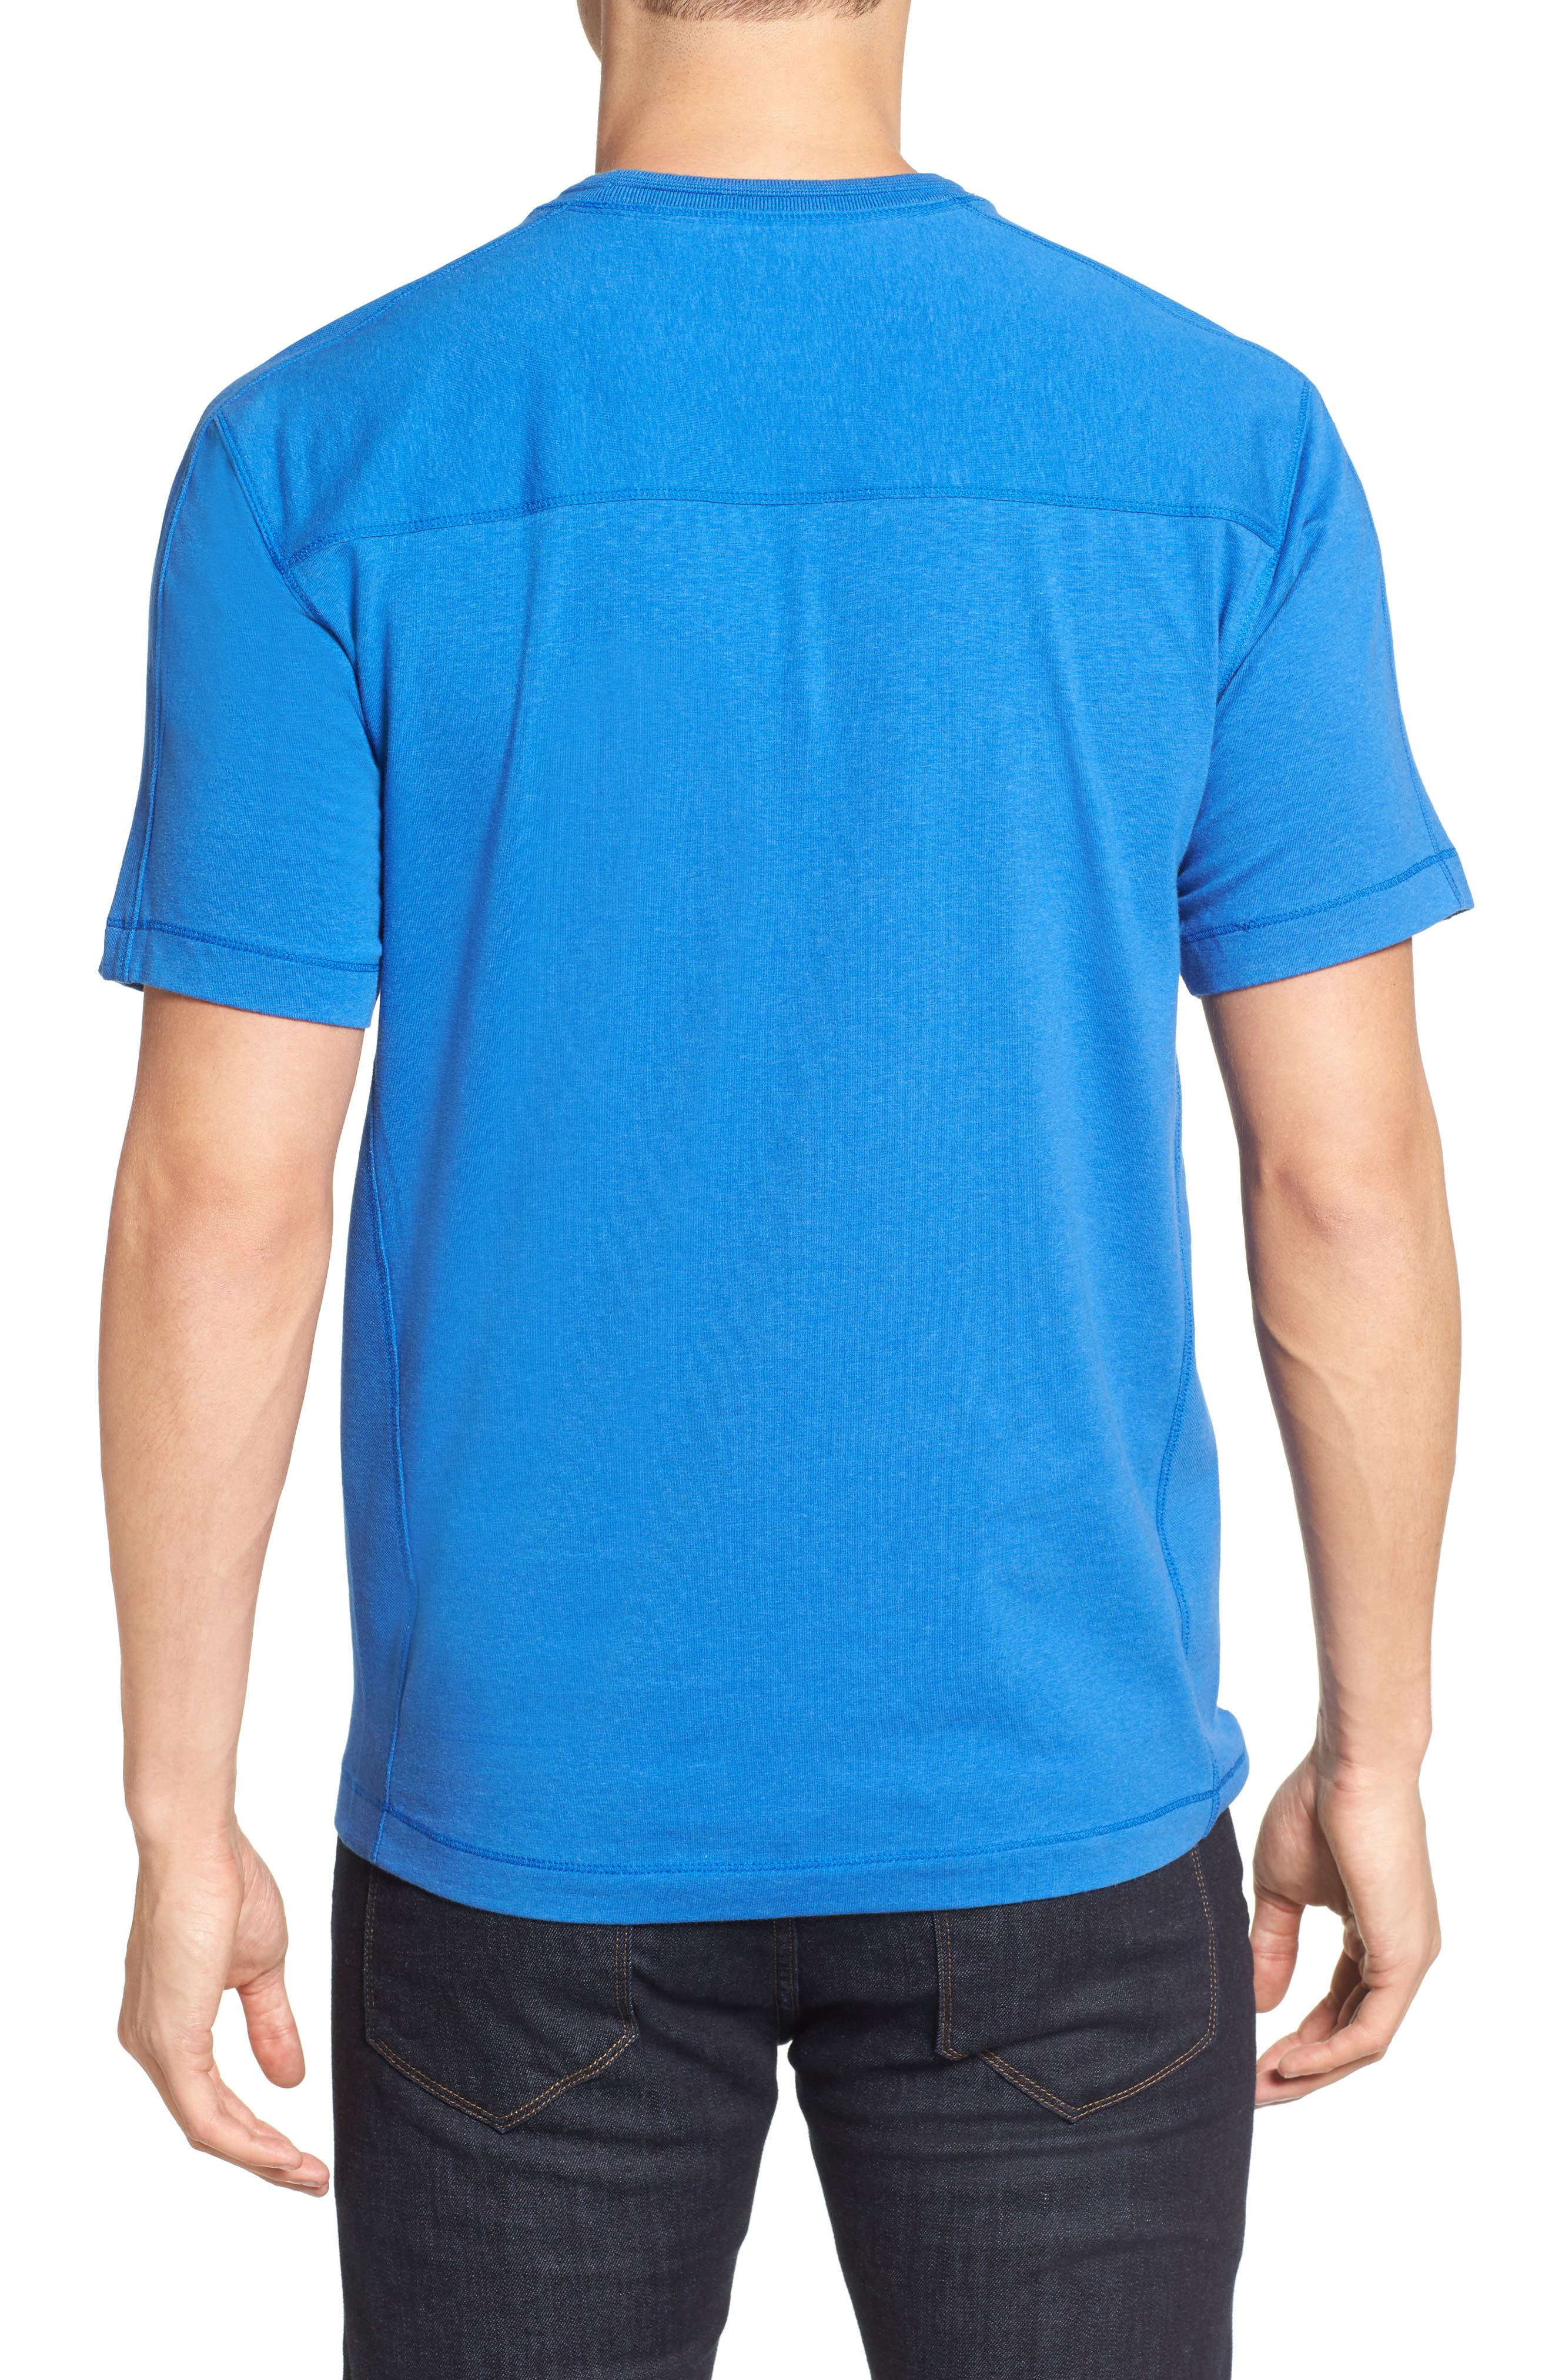 Steve Stretch Jersey T-Shirt,                             Alternate thumbnail 8, color,